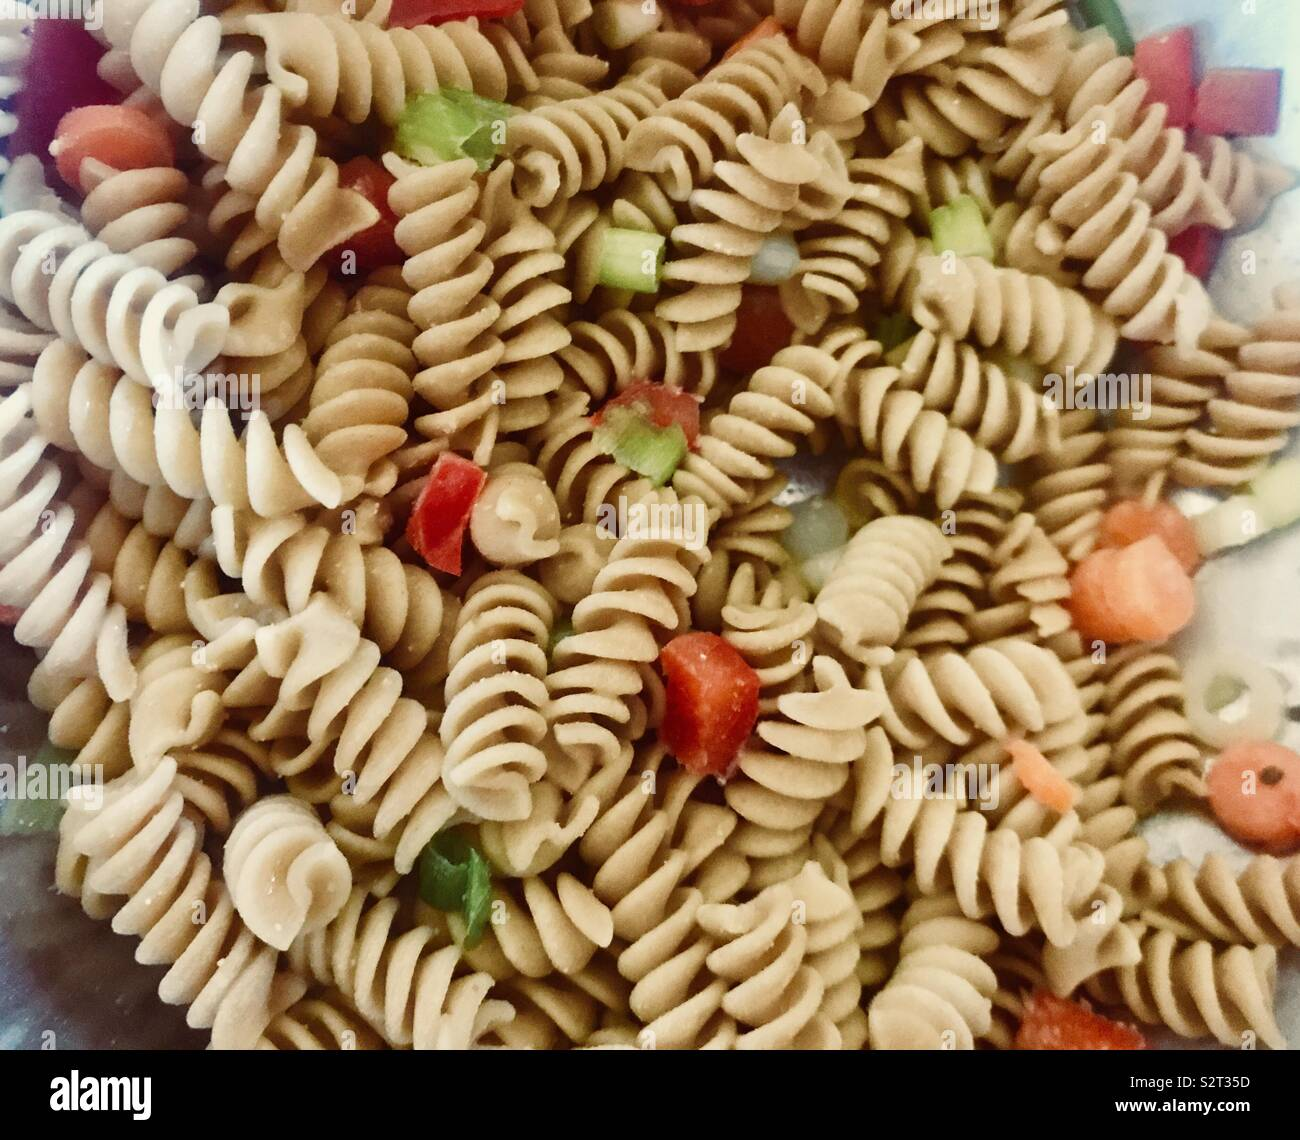 Yummy Pasta salad on a summers afternoon with bell peppers, carrots and salad dressing for seasoning - Stock Image